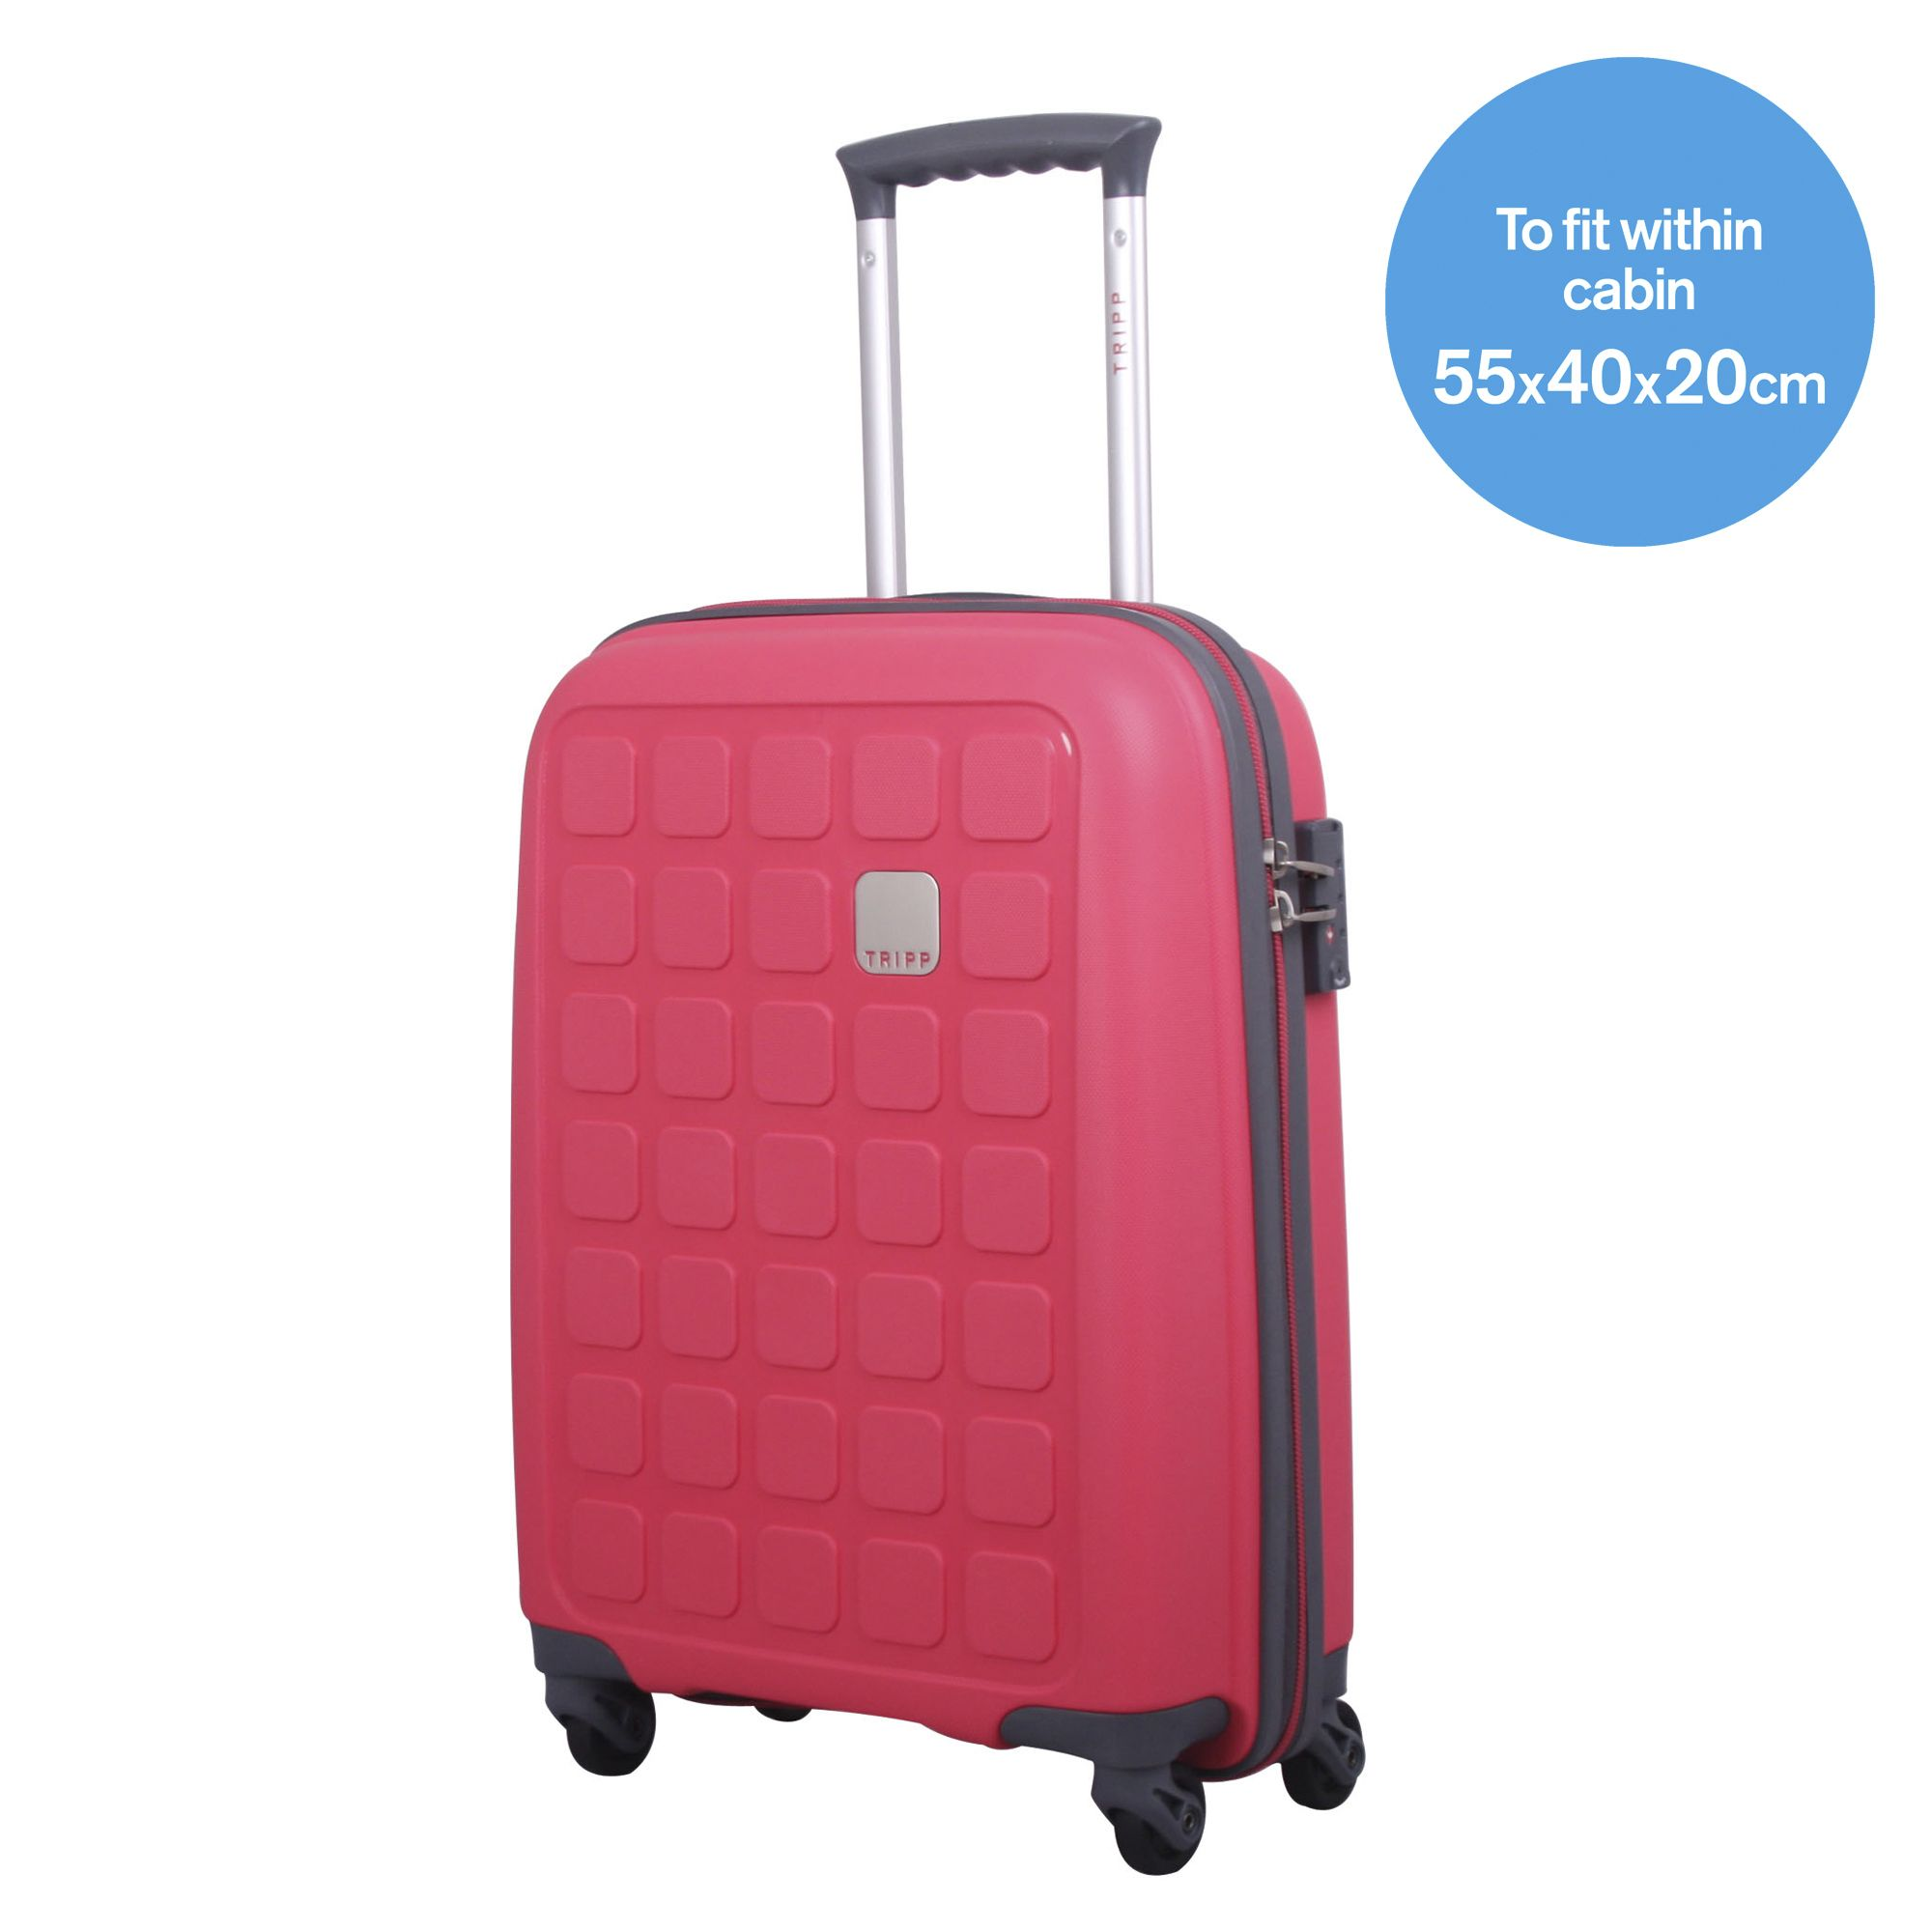 tripp watermelon ii 39 holiday 5 39 cabin 4 wheel suitcase hard shell suitcases tripp ltd. Black Bedroom Furniture Sets. Home Design Ideas